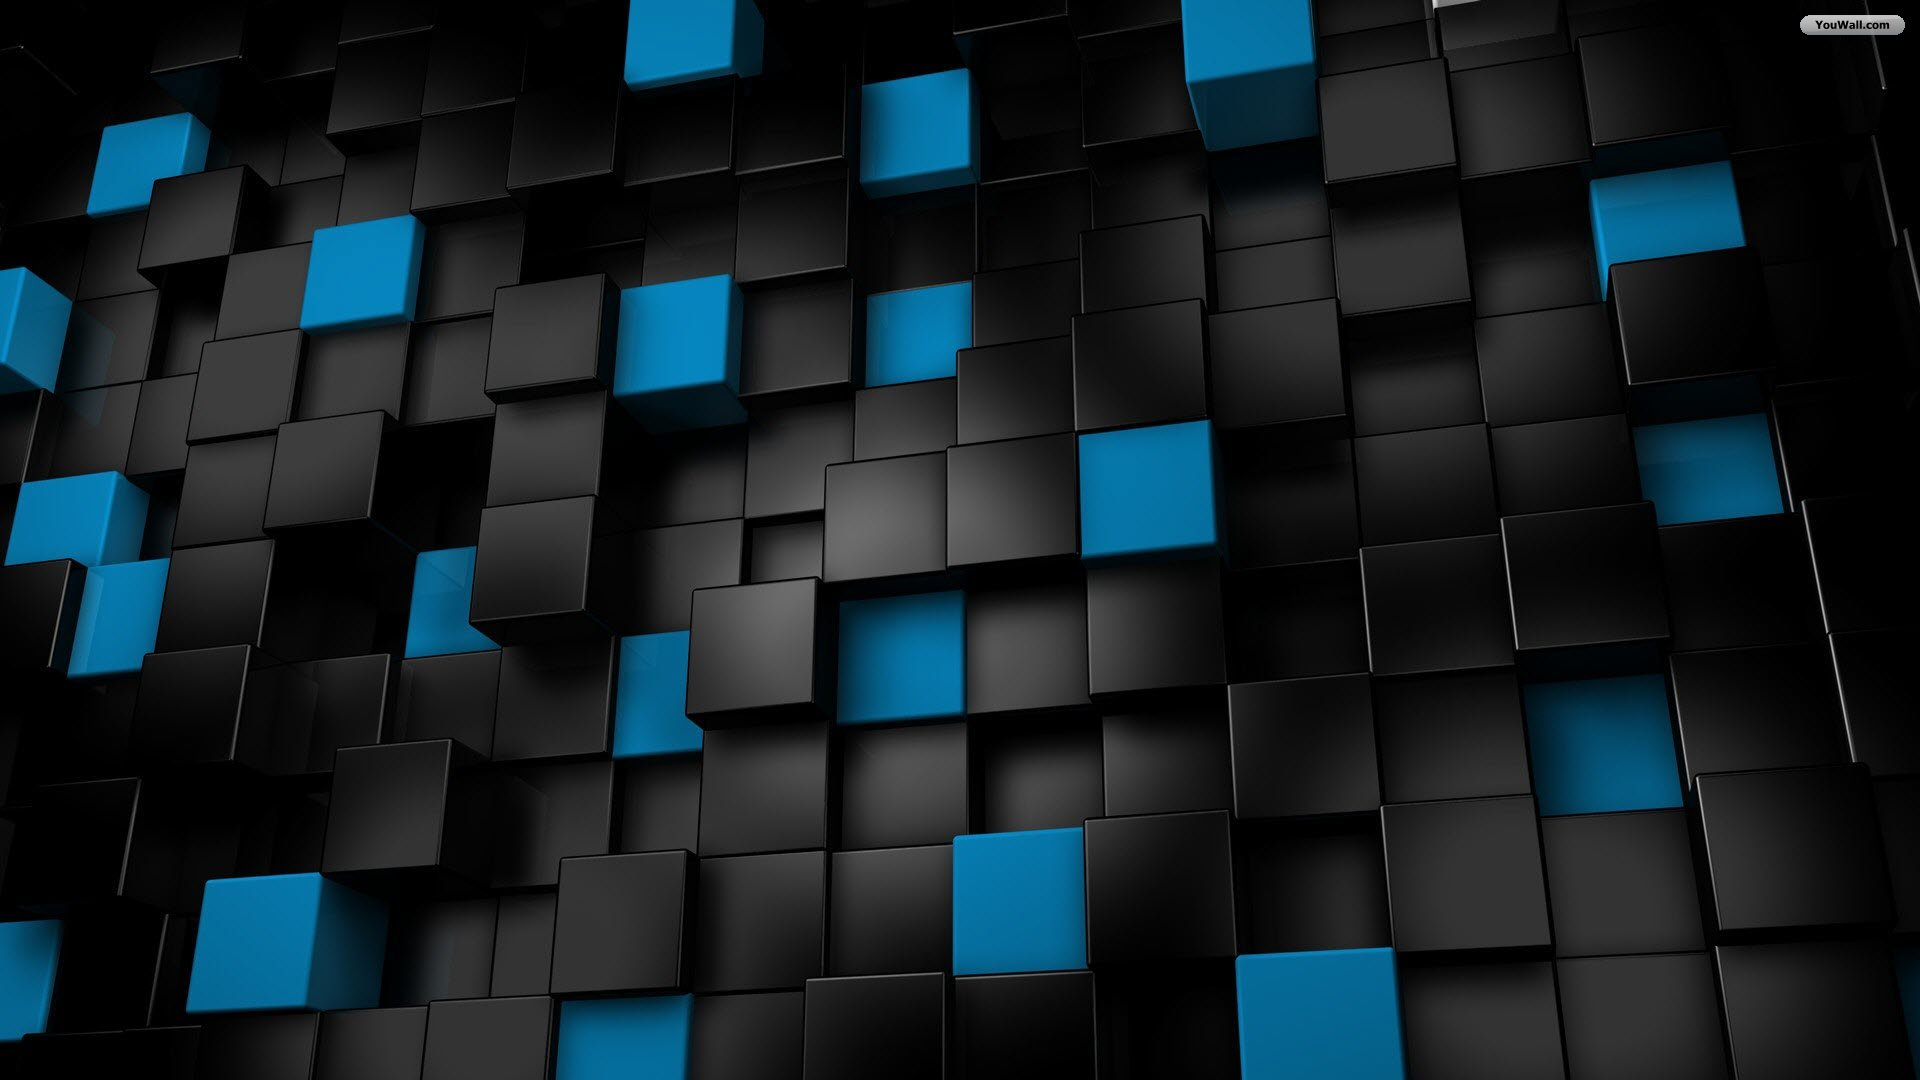 Black and blue cubes